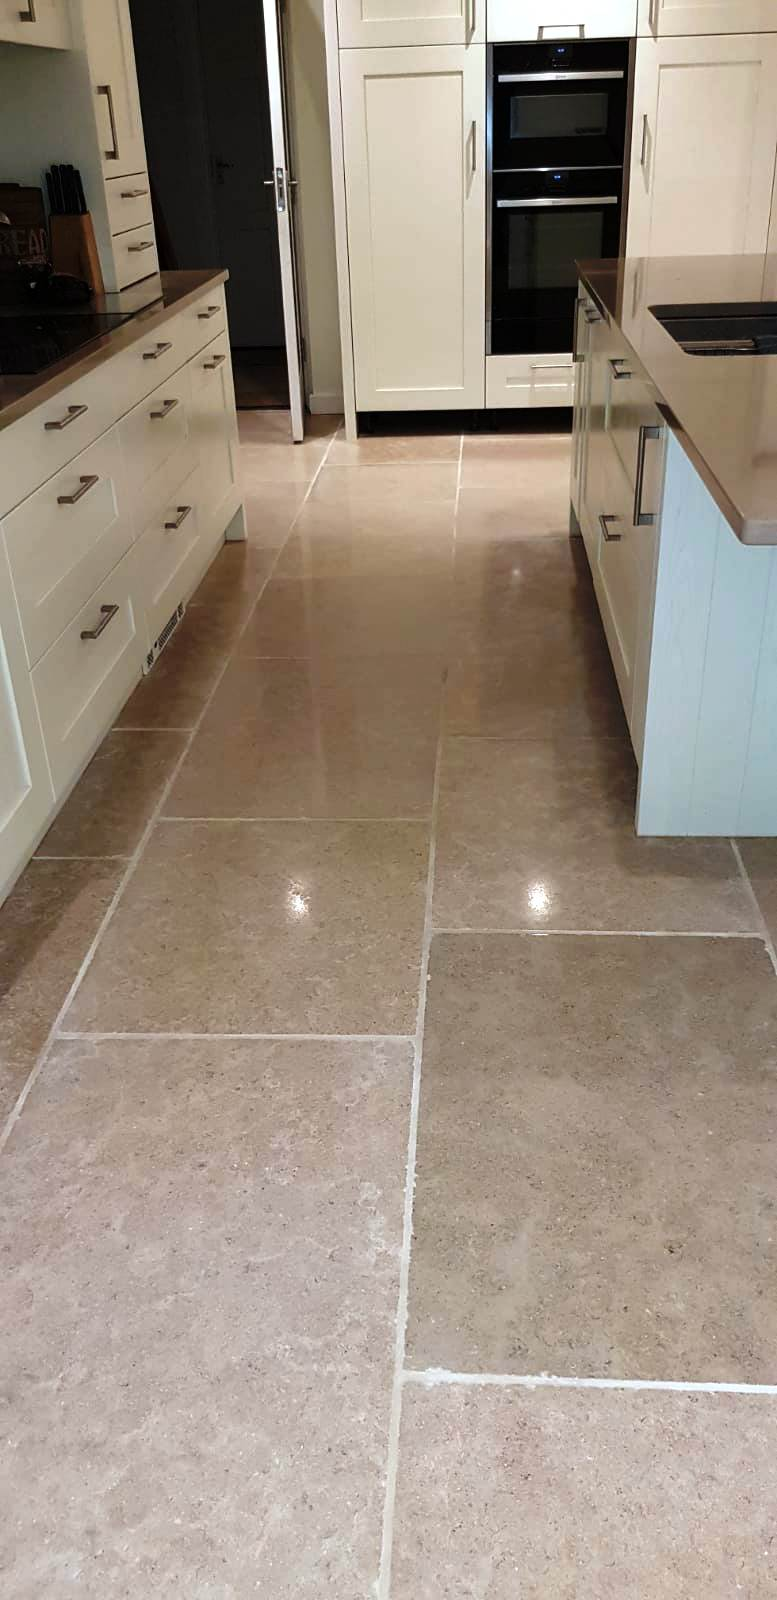 Uneven limestone tiled floor Wickham after levelling